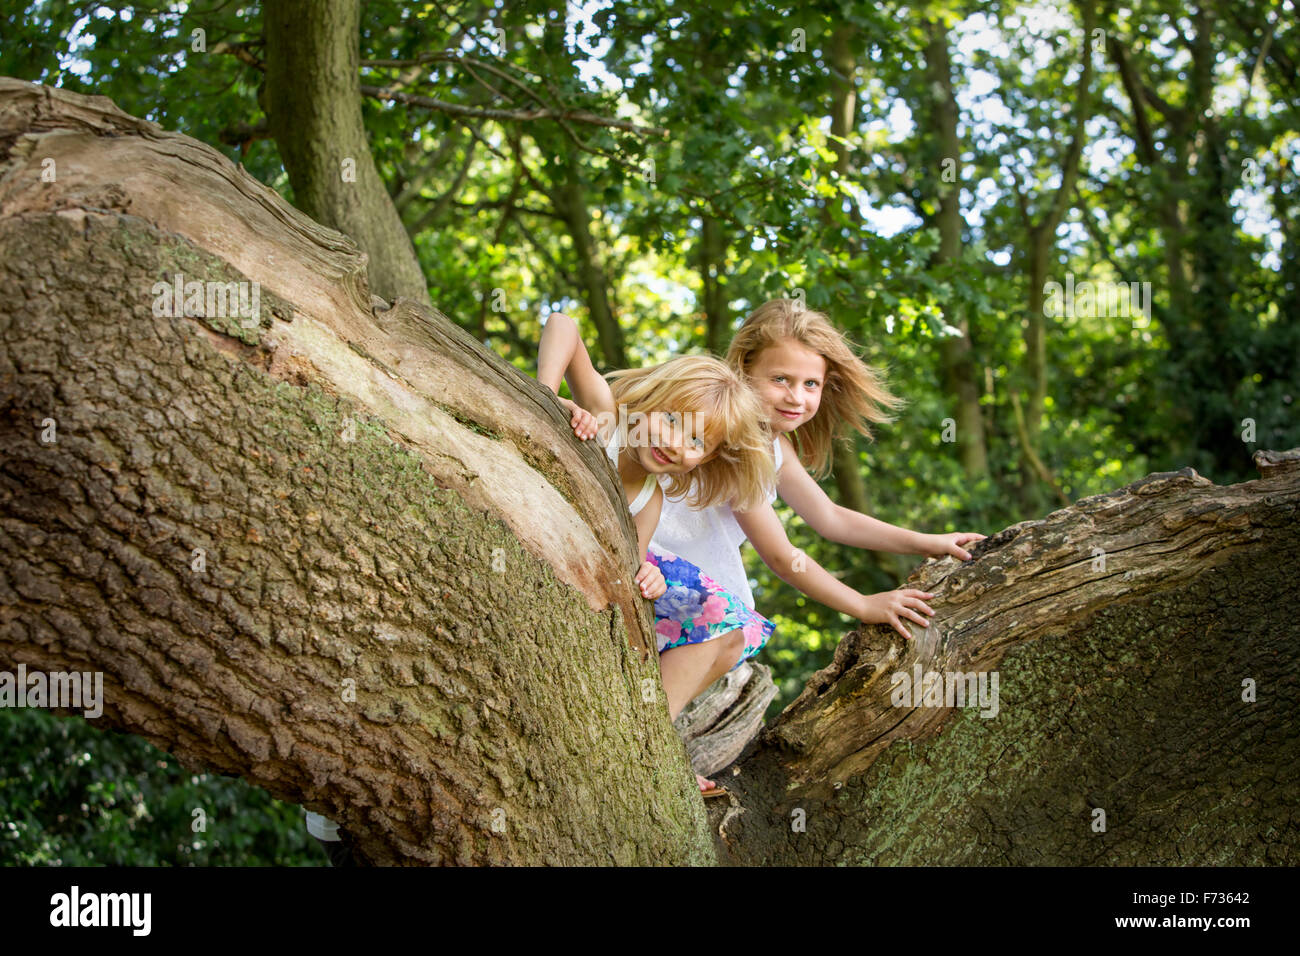 Two girls climbing a tree in a forest. - Stock Image